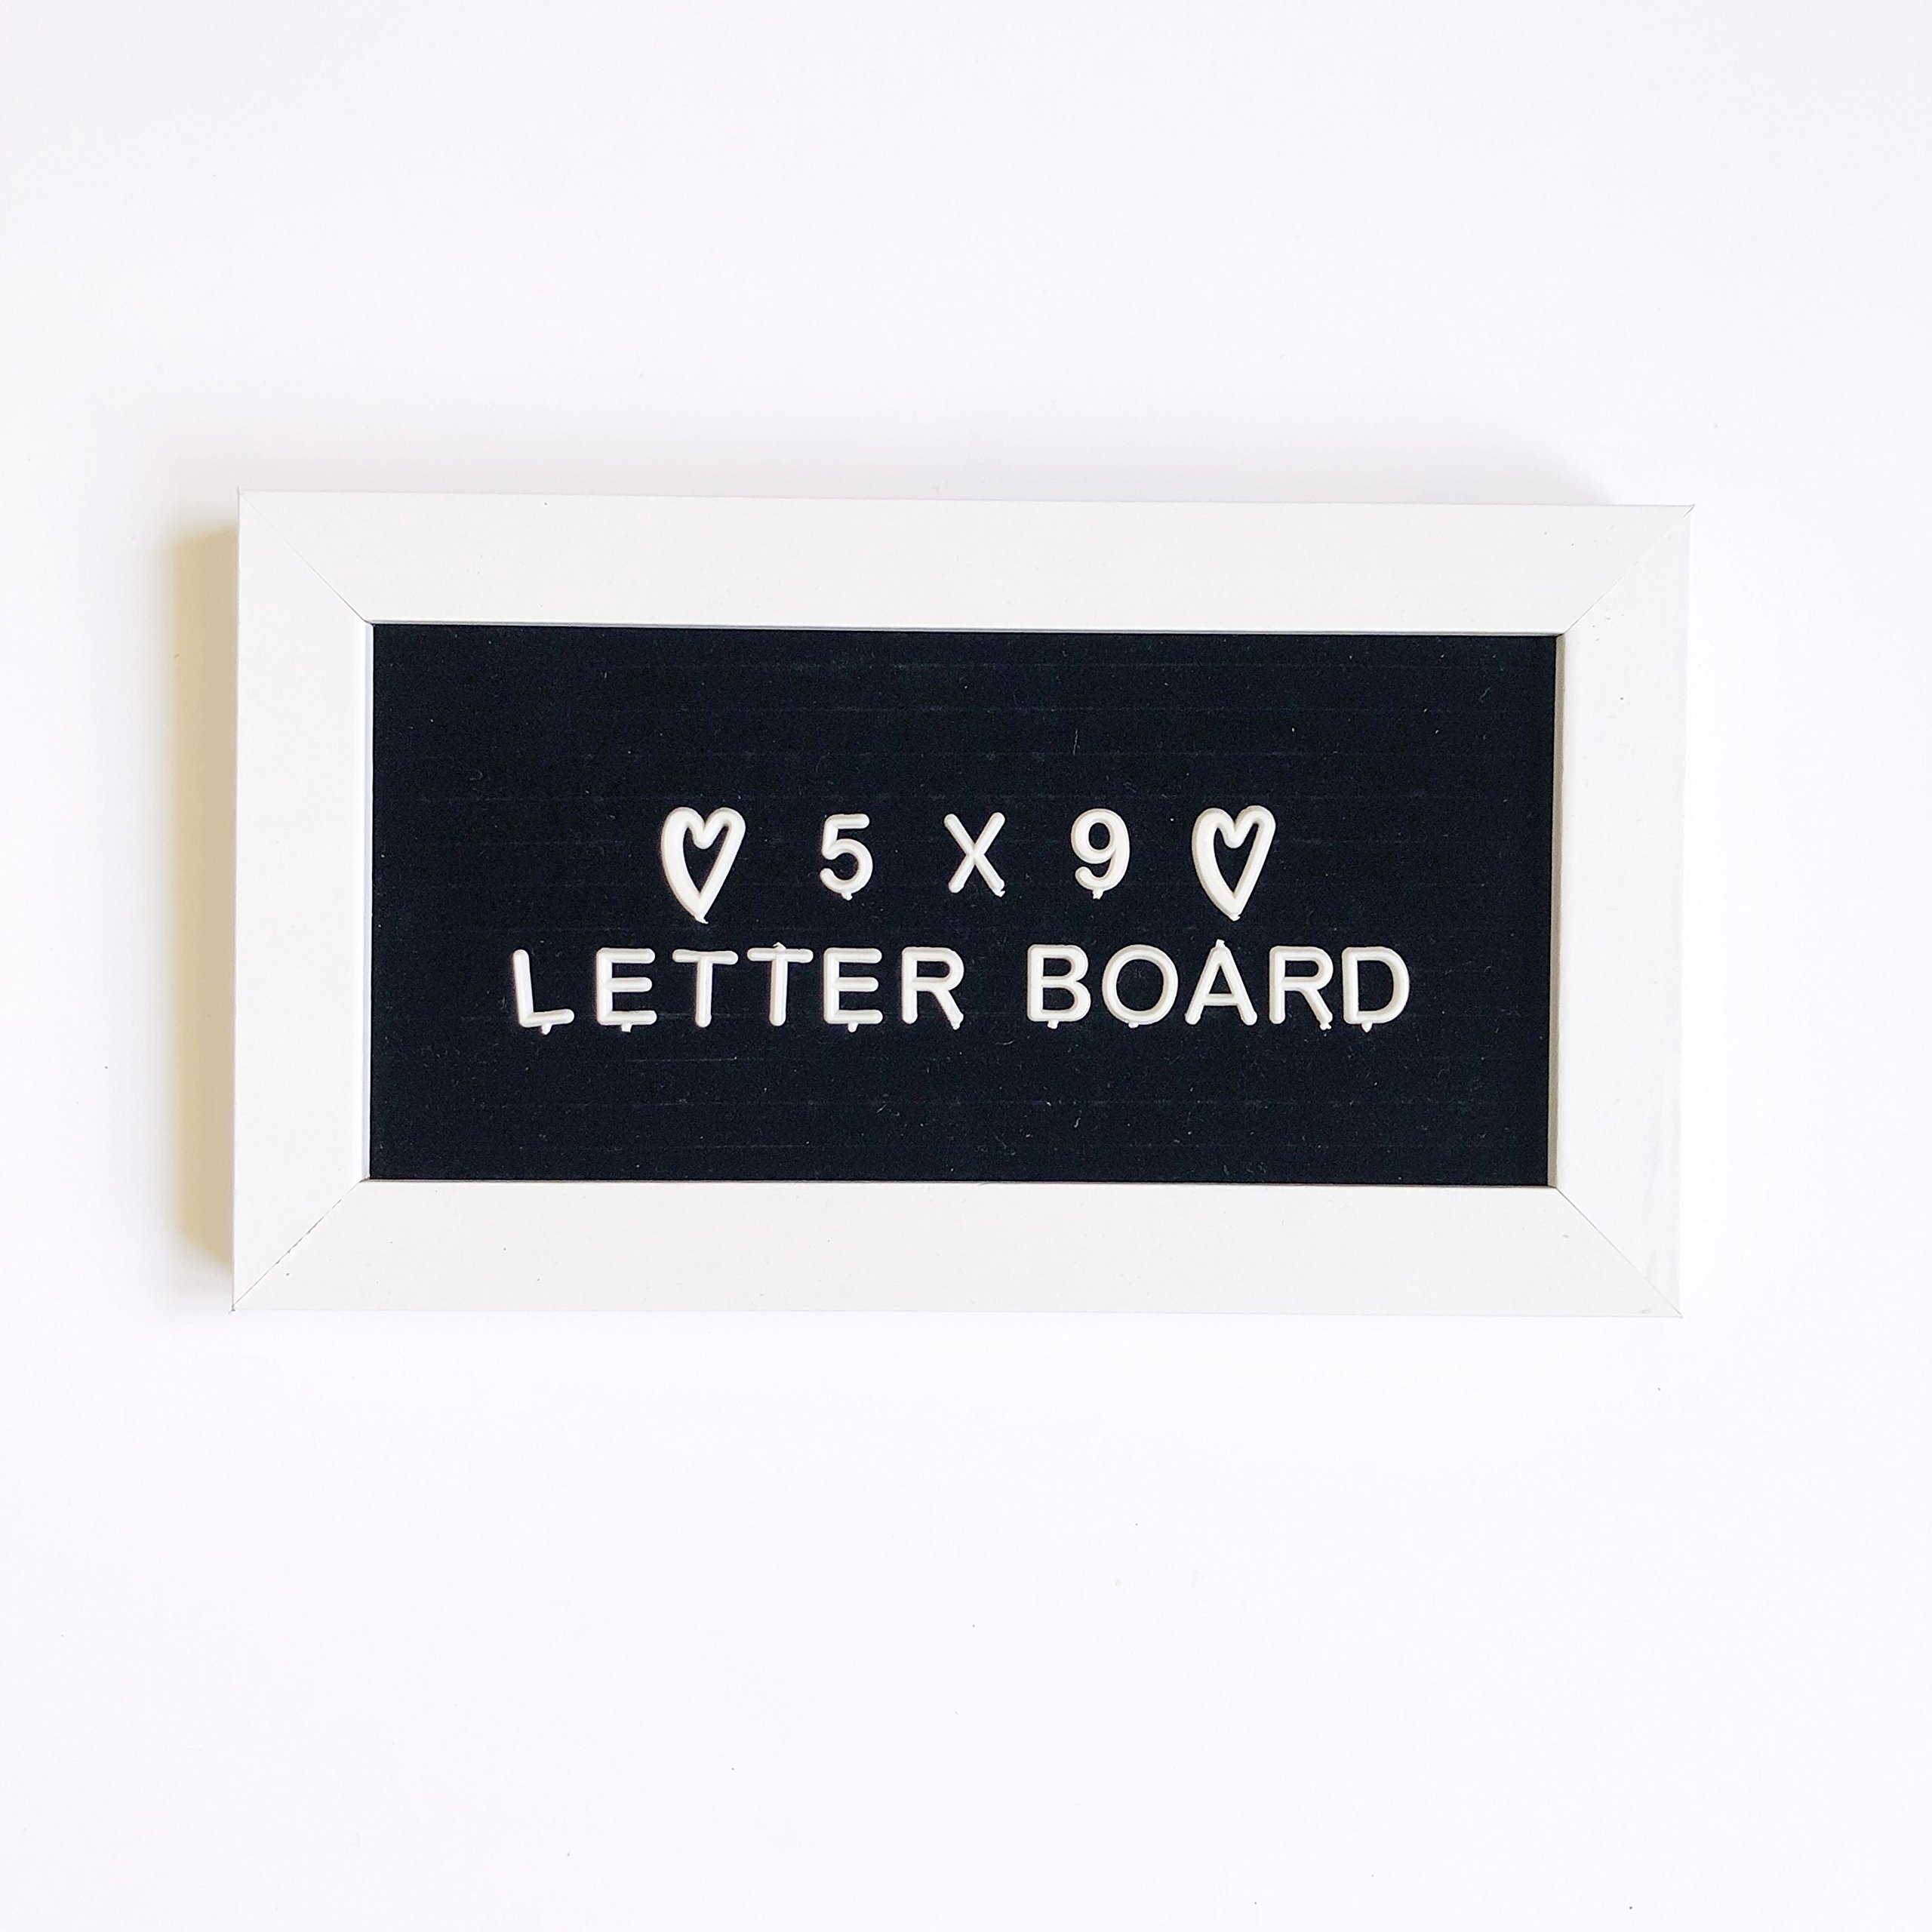 9 x 5 Small Mini Changeable Letter Board White Wood Frame Tiny Little Black Felt Message Sign, Vintage Classroom Announcement Word Bulletin + 183 Unique Plastic Characters Set For Menu or Office Quote